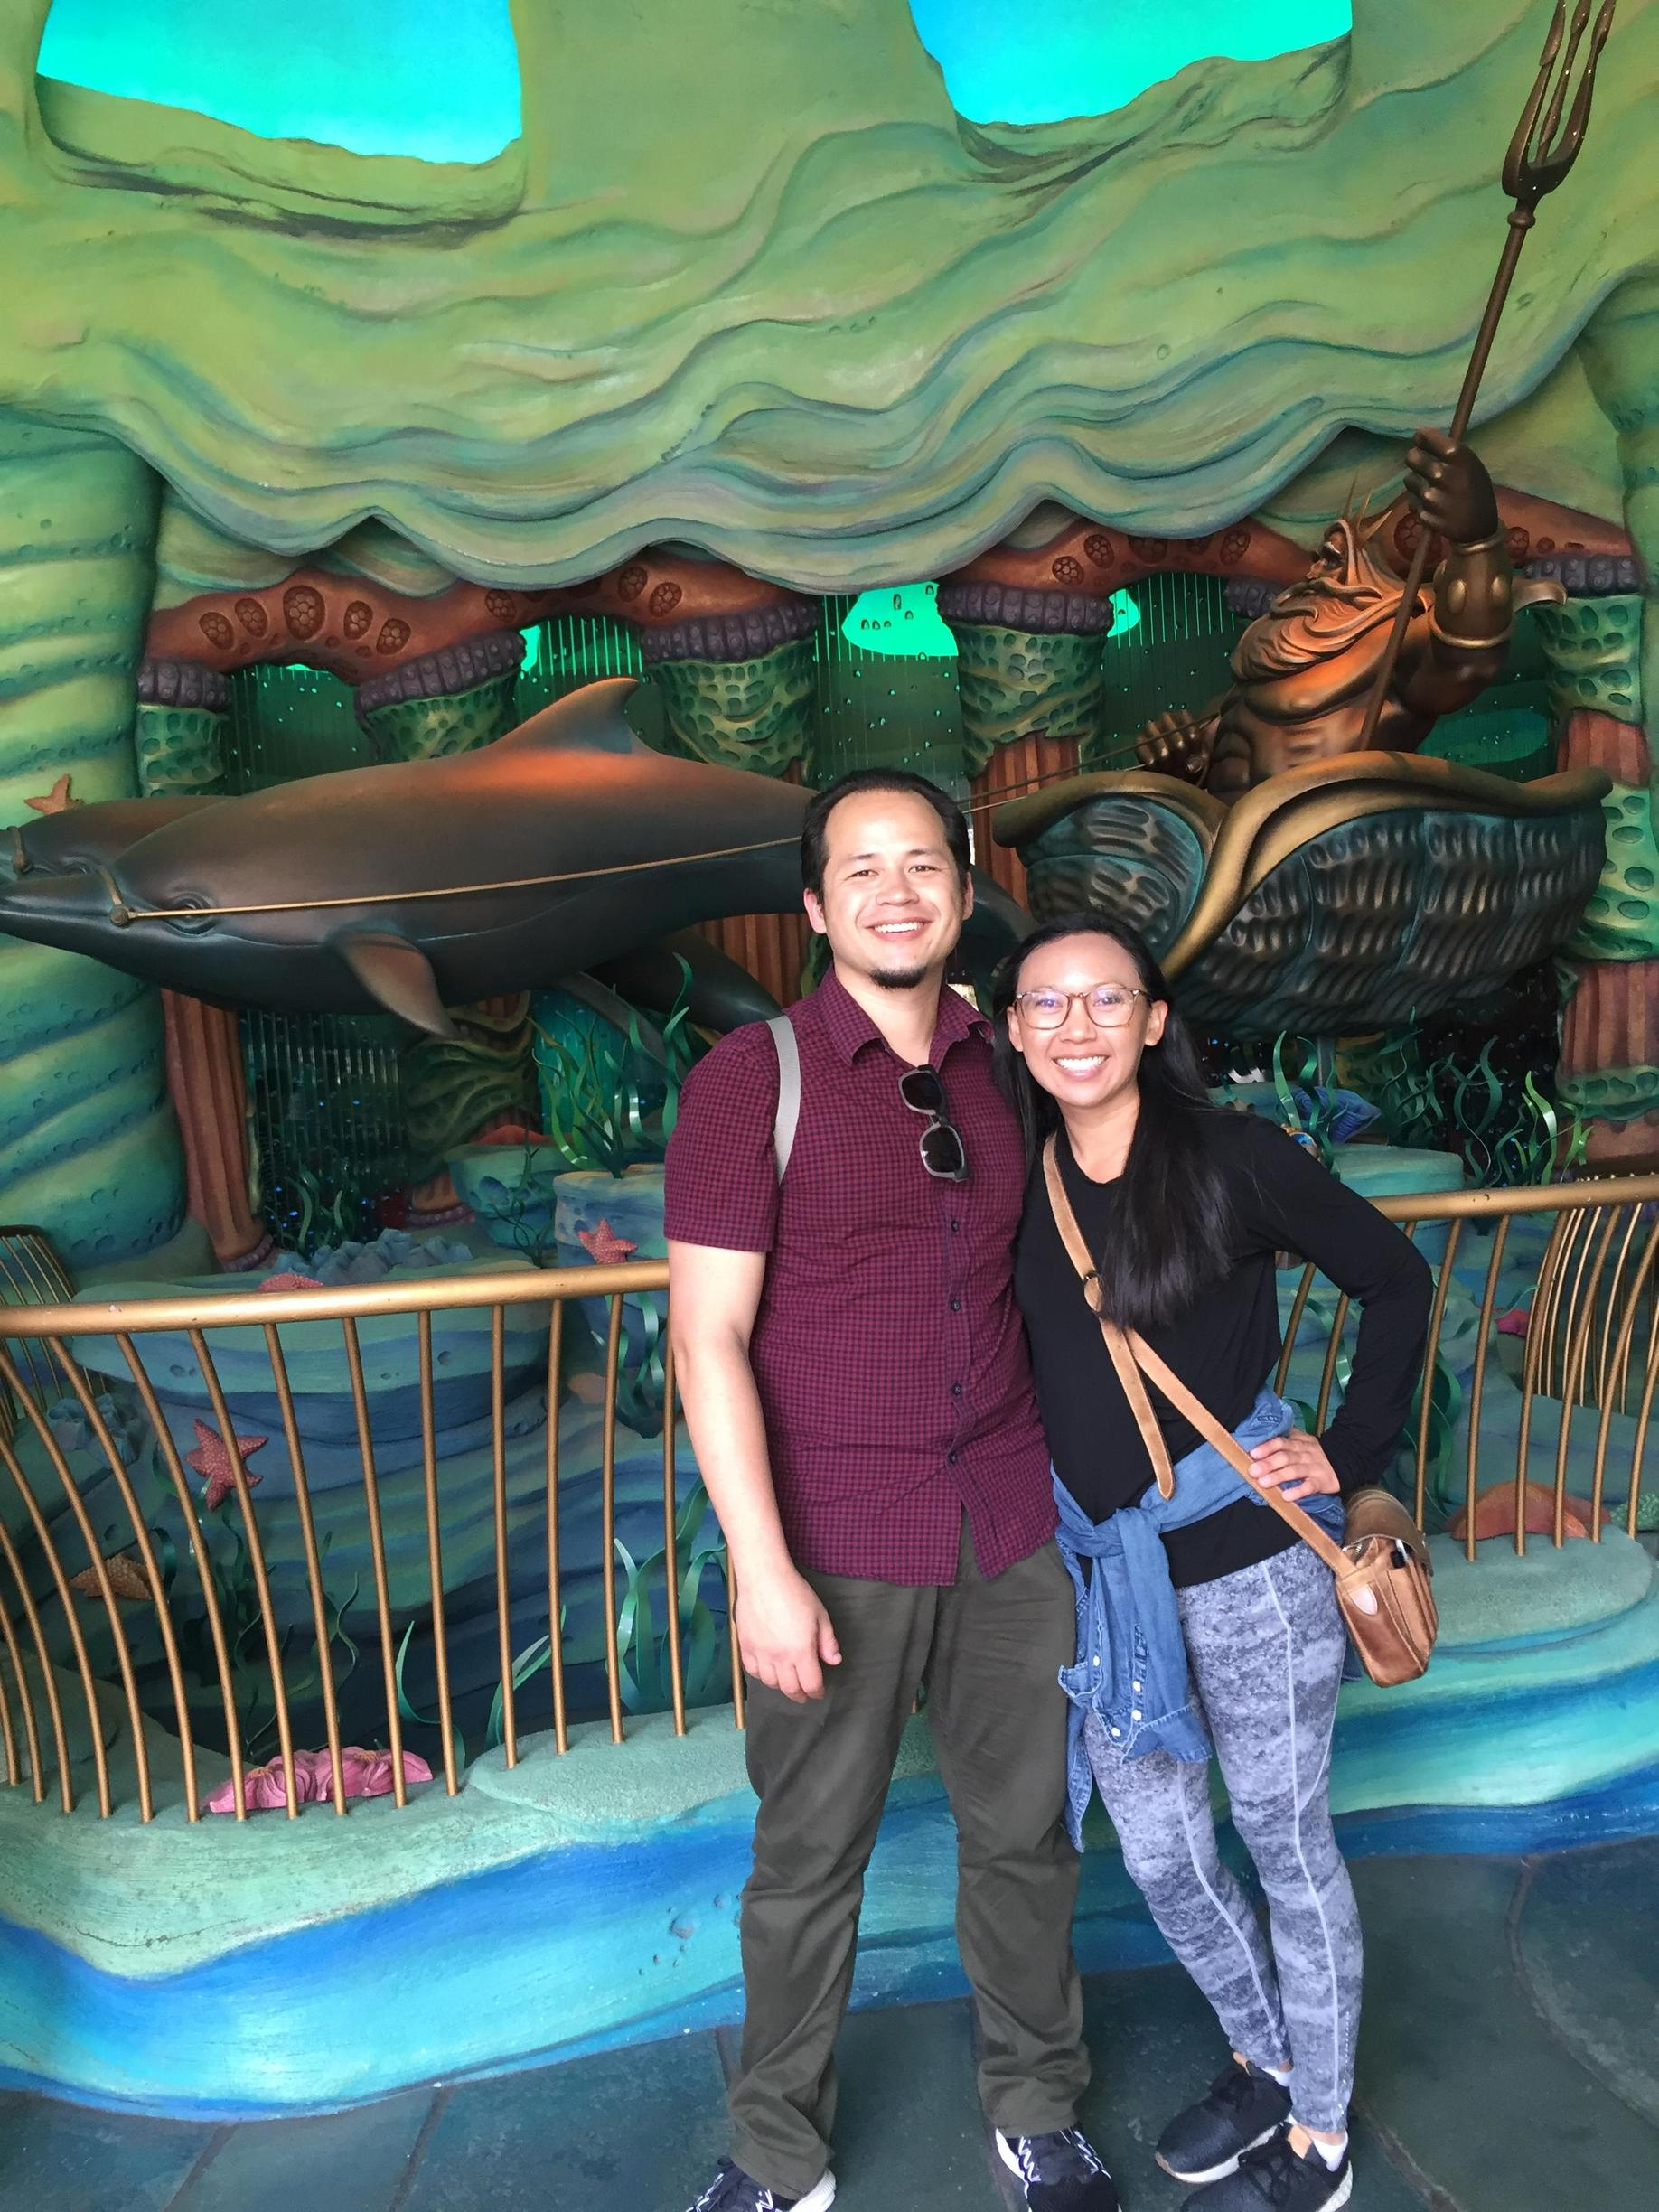 Mrs. and Mr. Palmer hanging out in front of a Little Mermaid set at Disney Sea Resort in Tokyo, Japan.